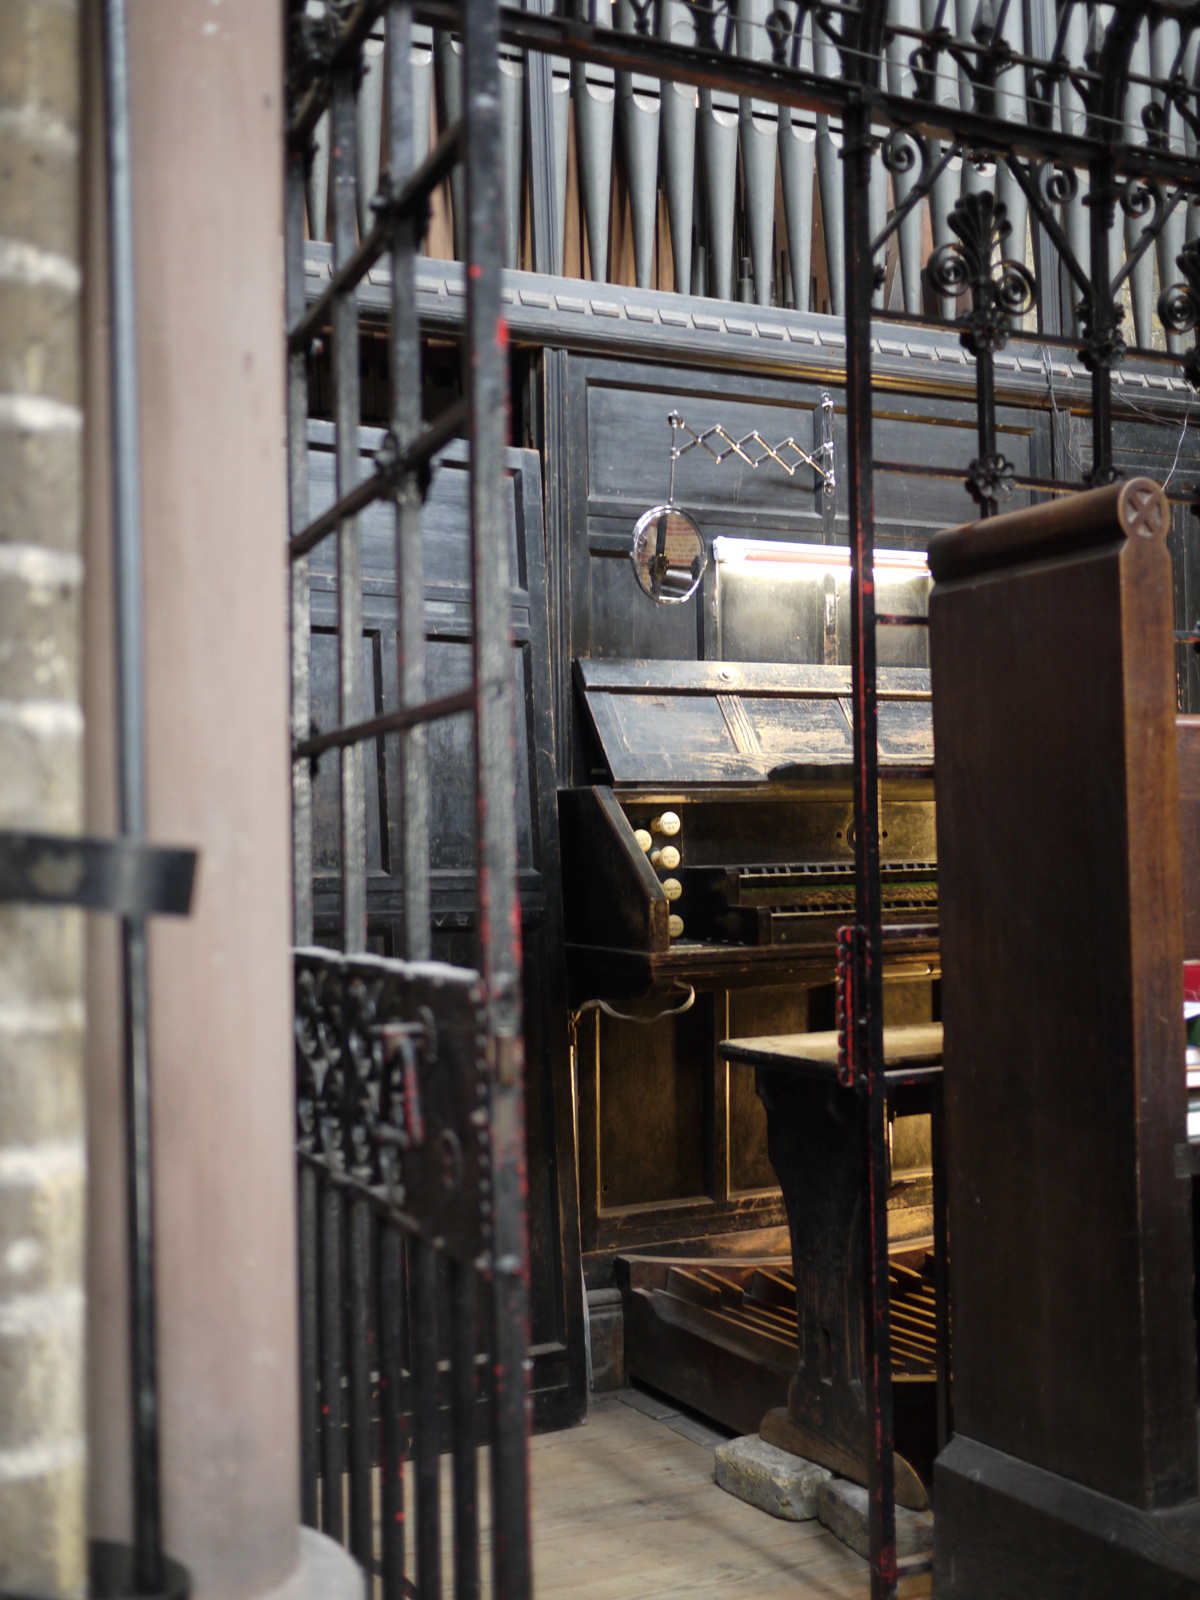 The organ at St Peter's Vauxhall